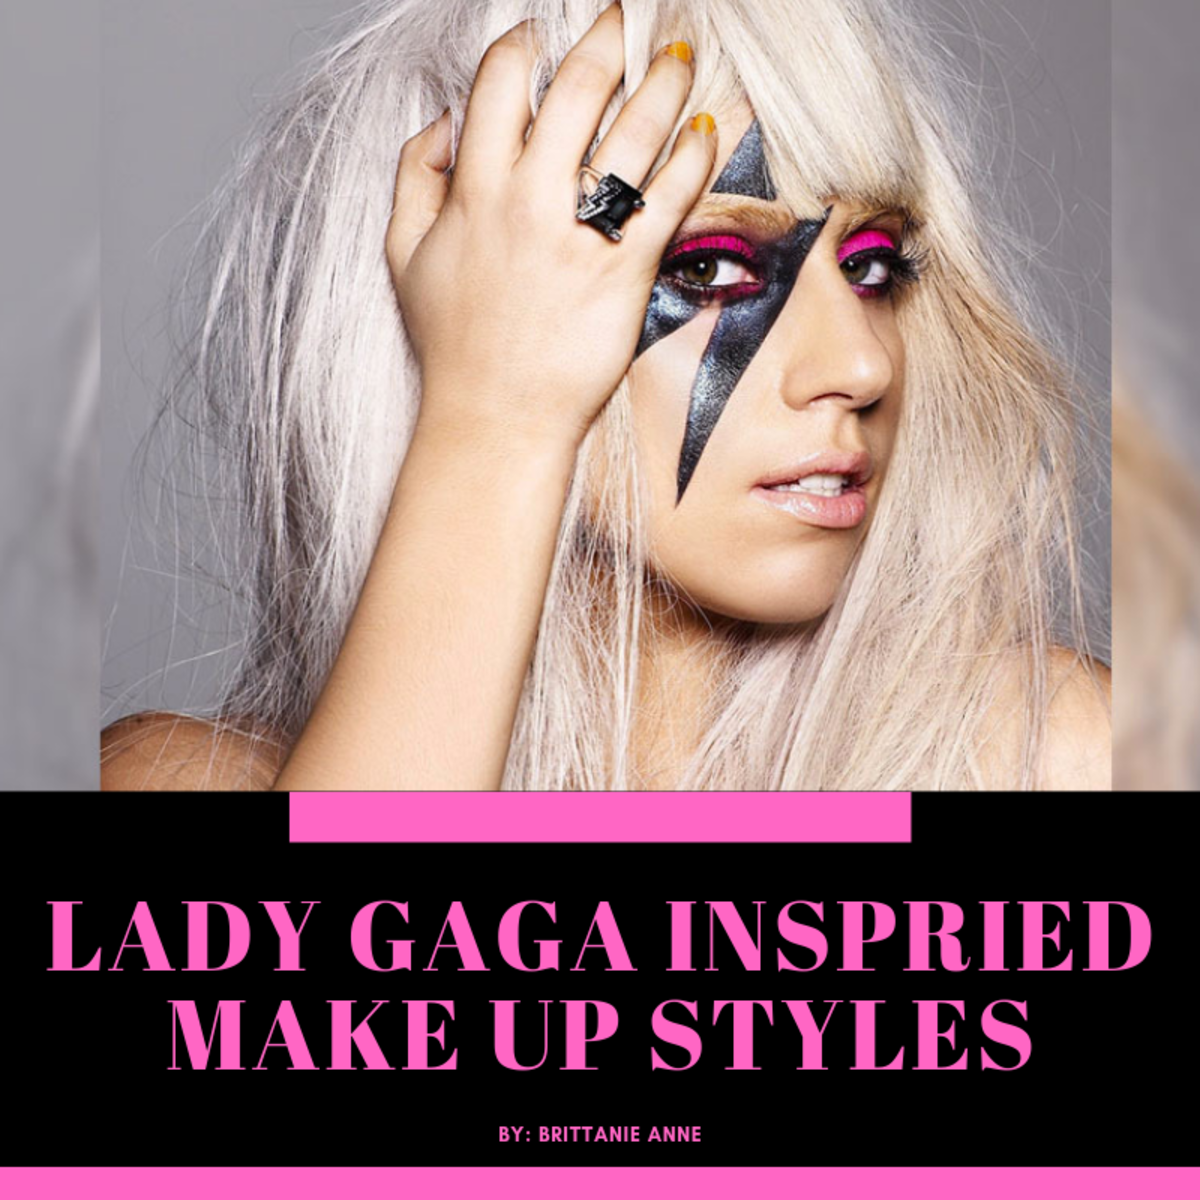 Lady Gaga Inspired Makeup Looks